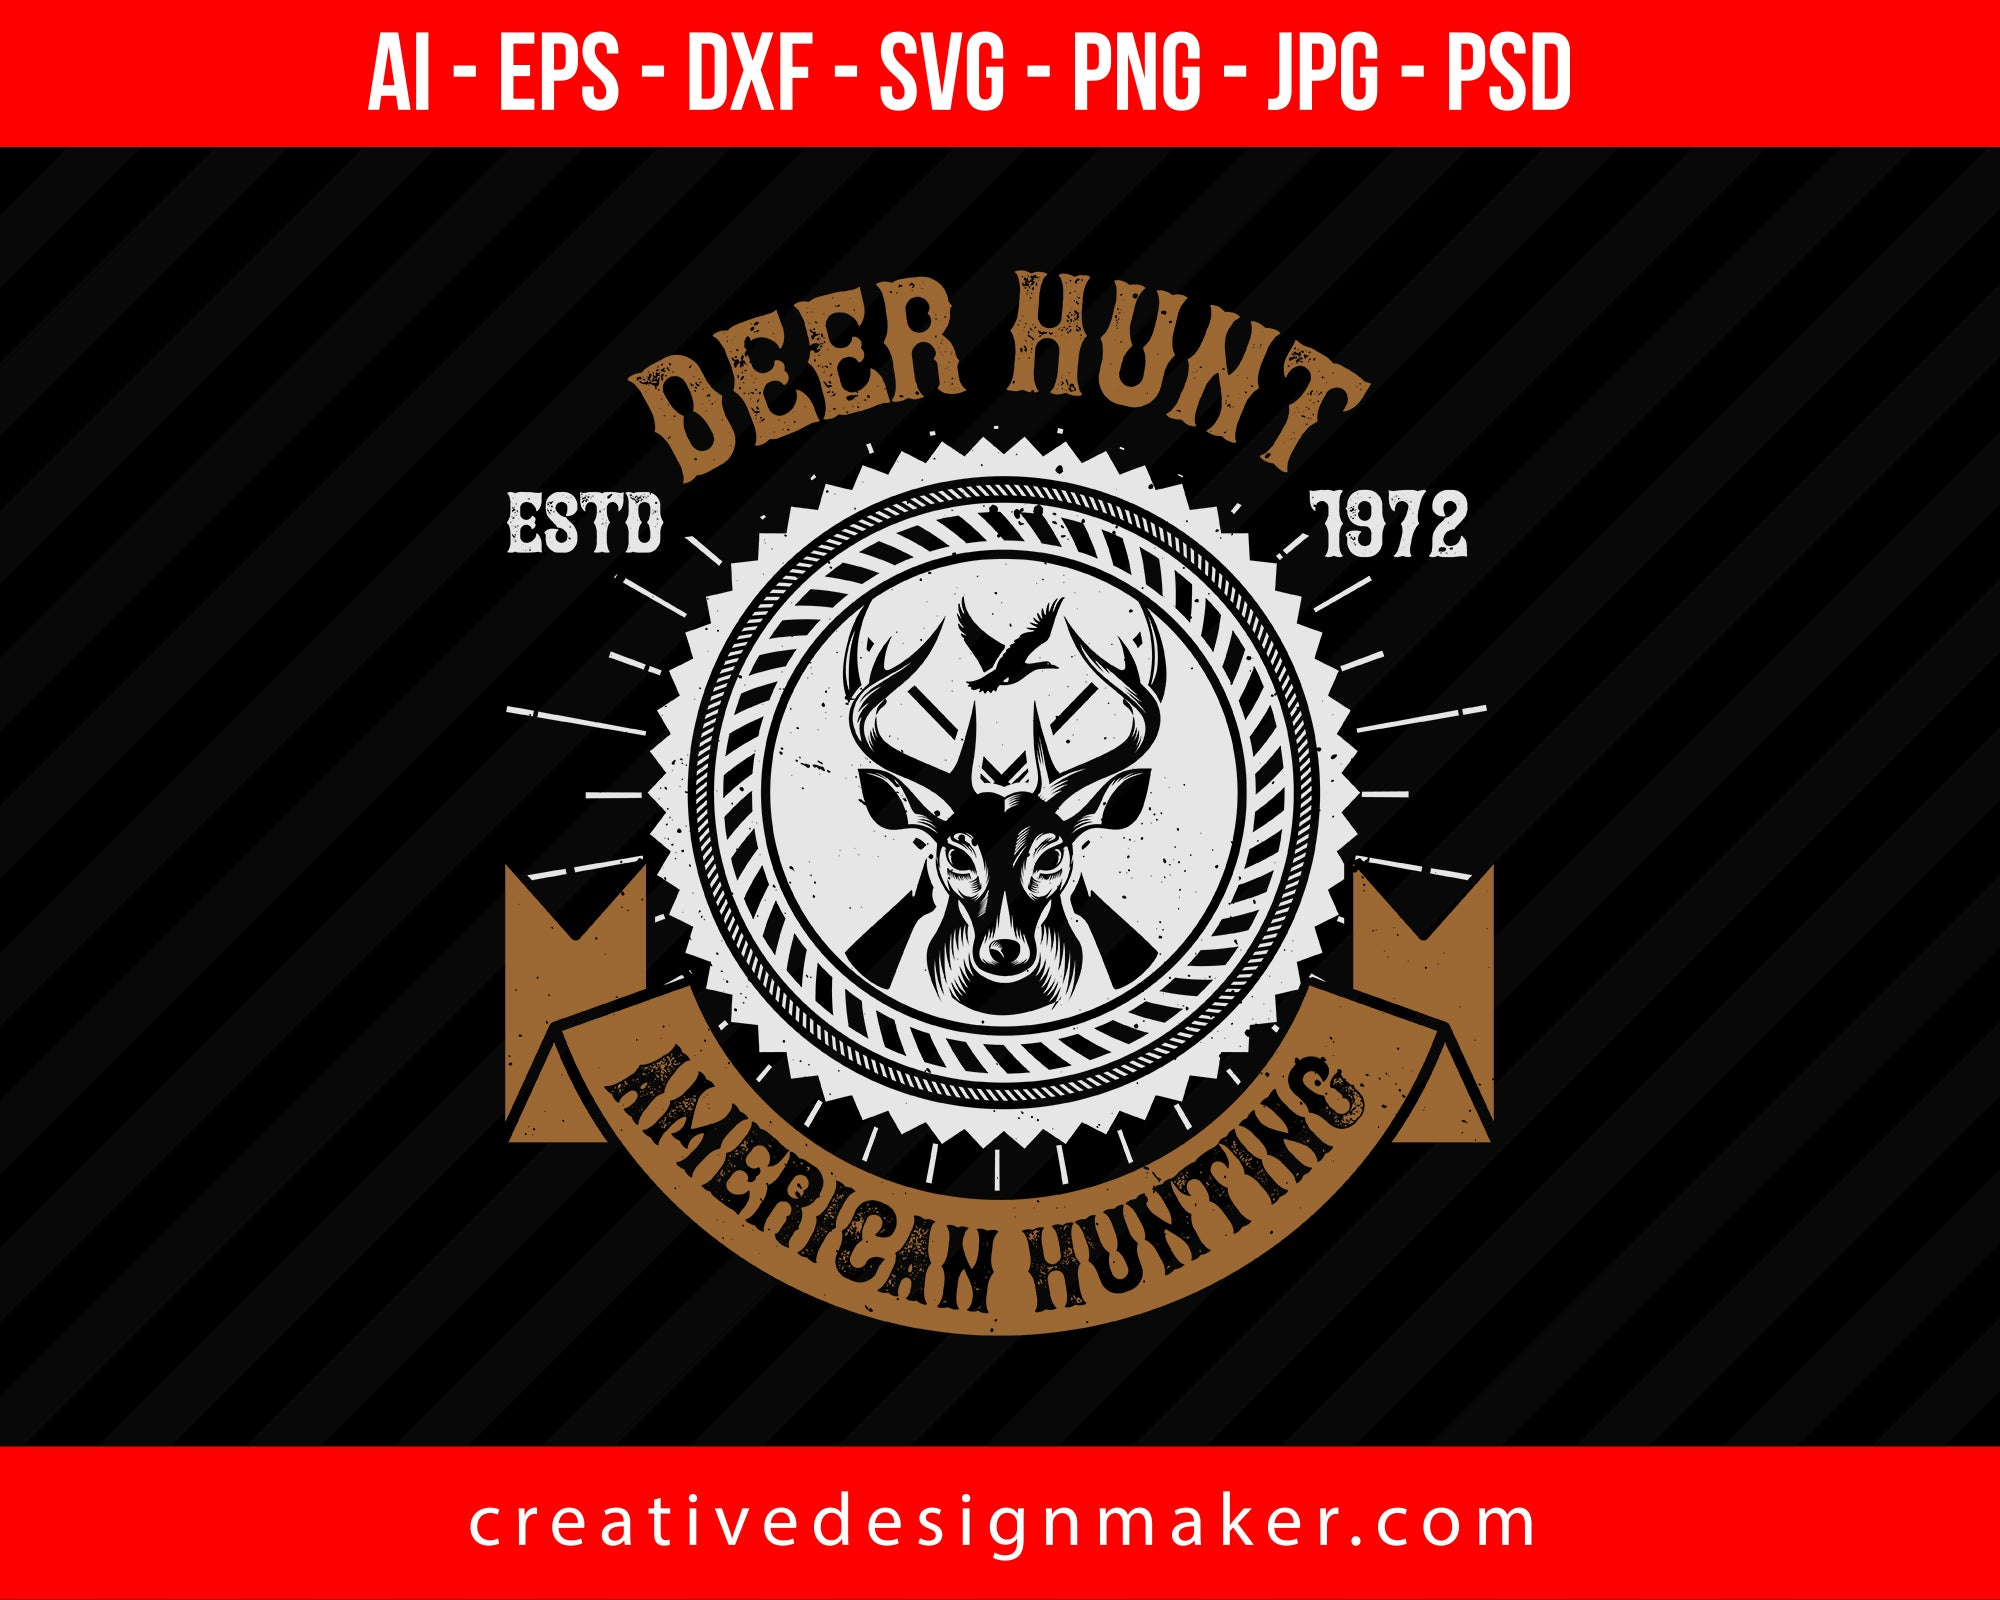 Dear Hunt American Hunting Club Print Ready Editable T-Shirt SVG Design!